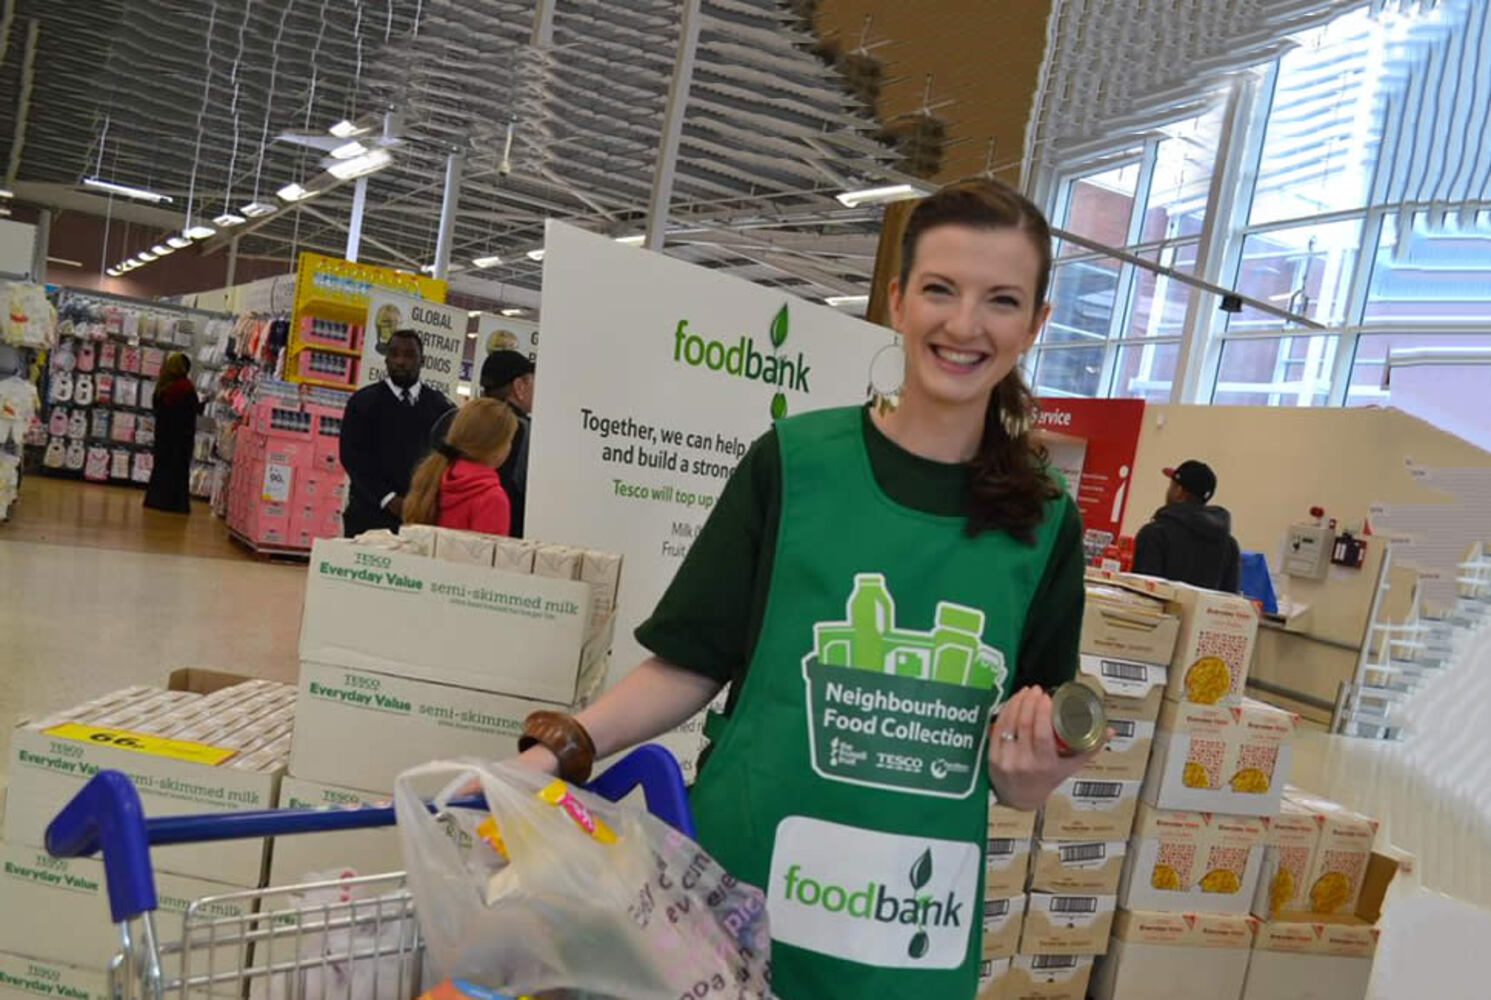 The Neighbourhood Food Collection is part of our ongoing effort to encourage customers to donate long-life food to charity